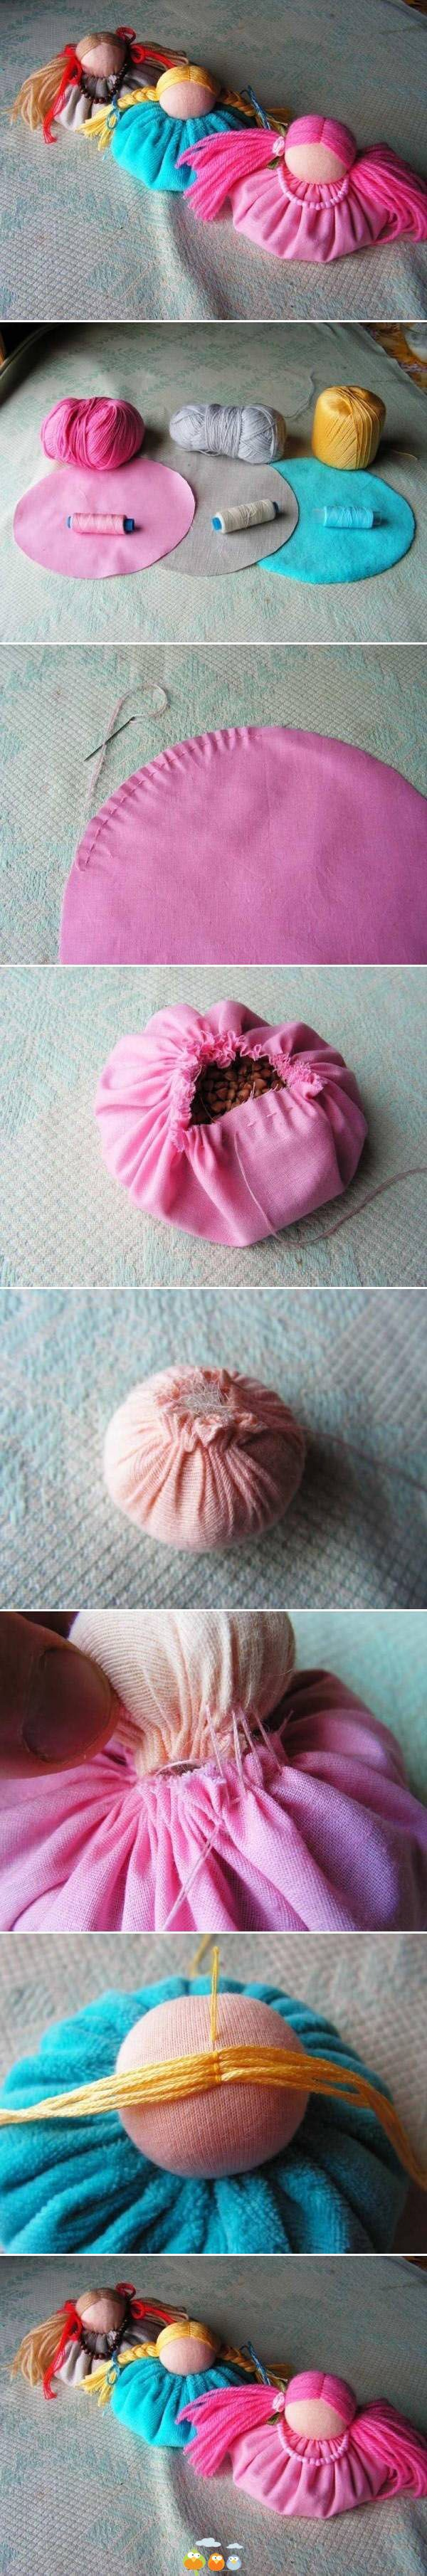 Cute idea for lavender sachets.